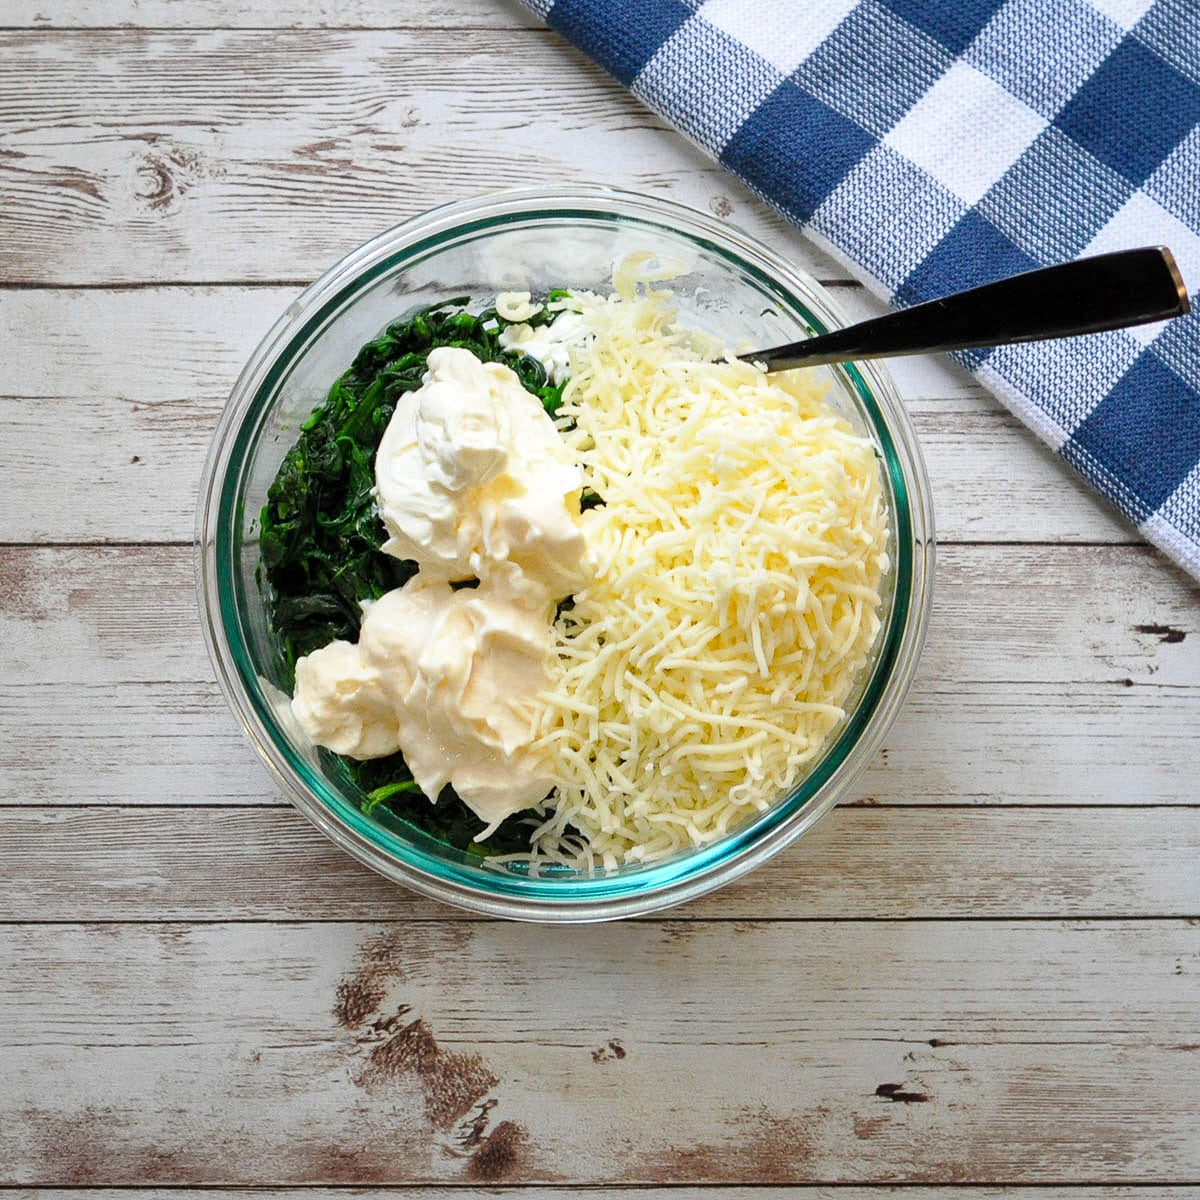 cream cheese, shredded cheese, mayo, and spinach in a bowl